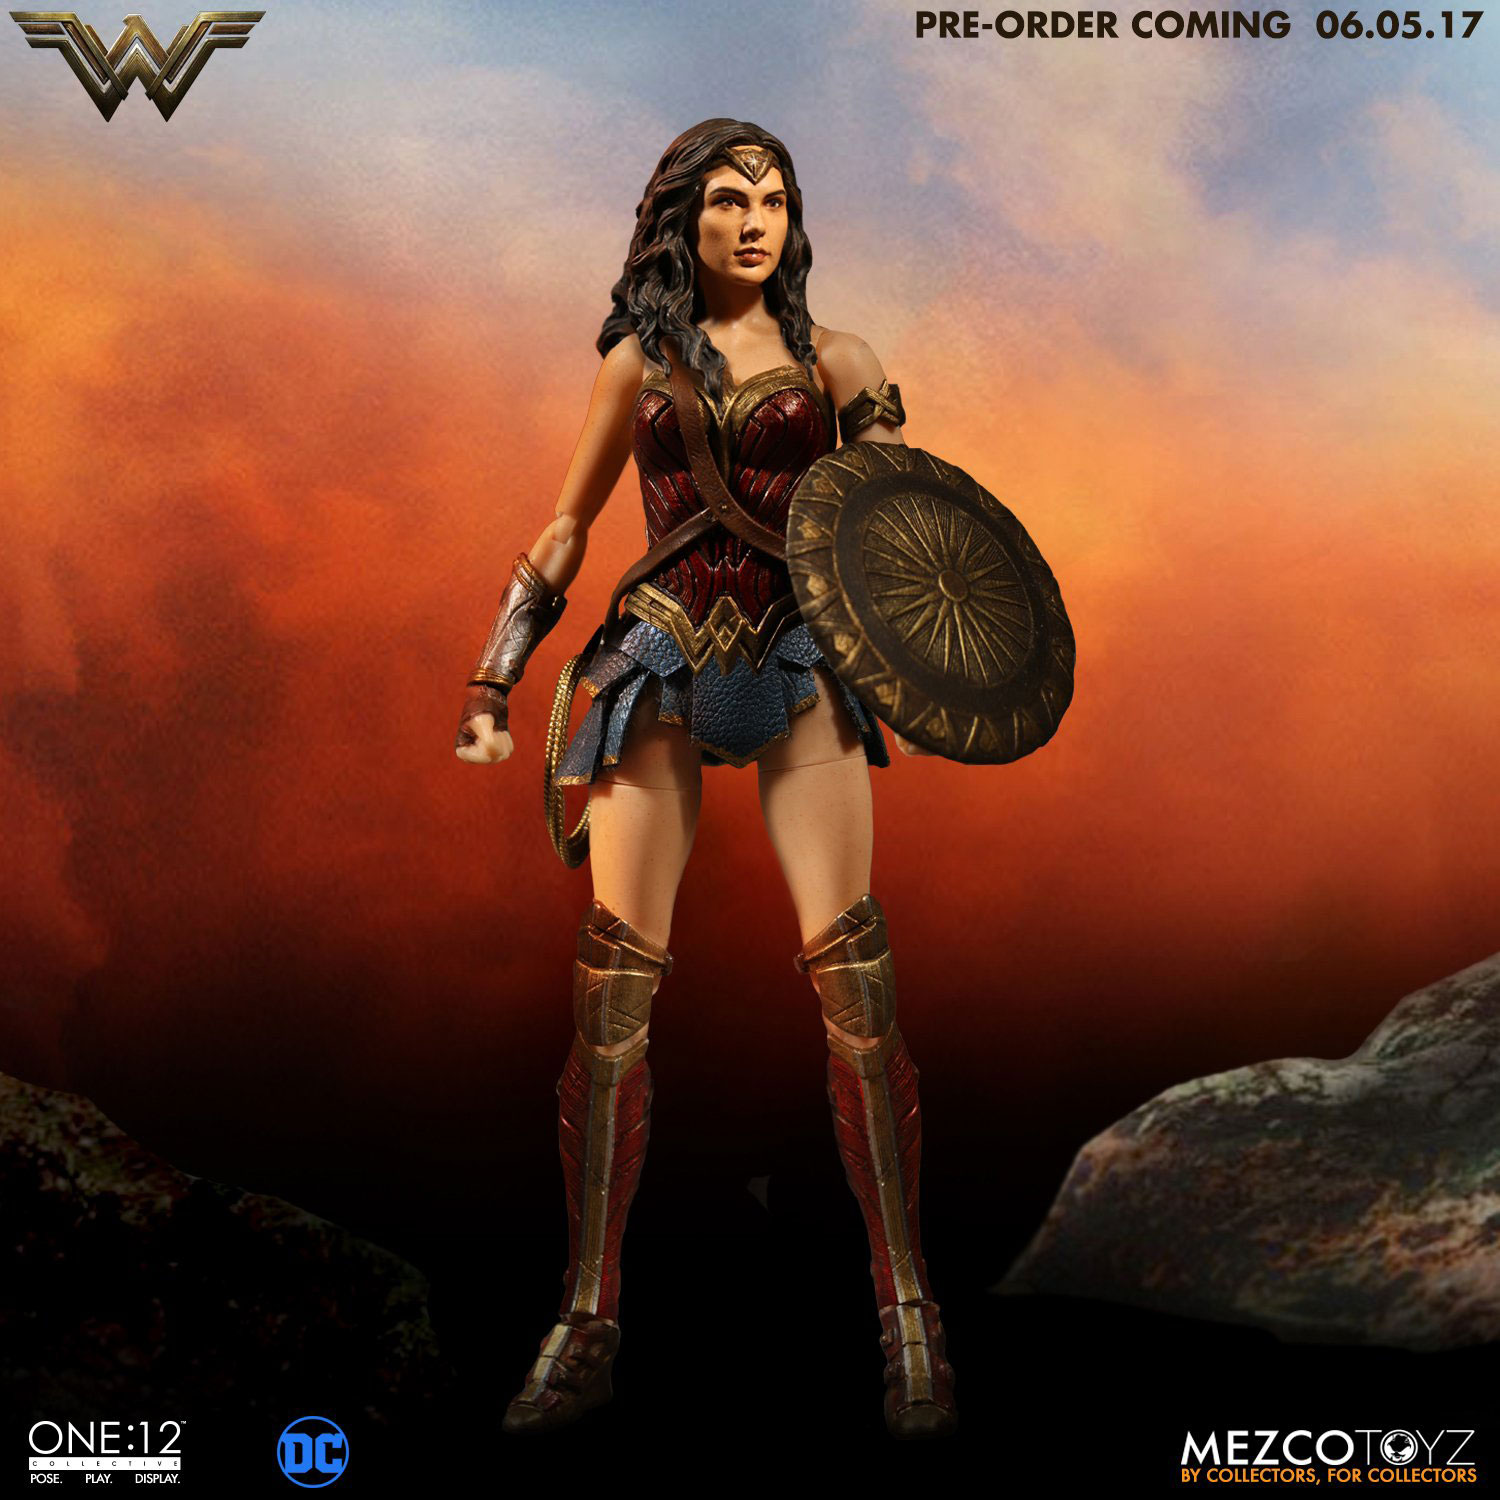 Mezco-One12-Collective-Wonder-Woman-Figure